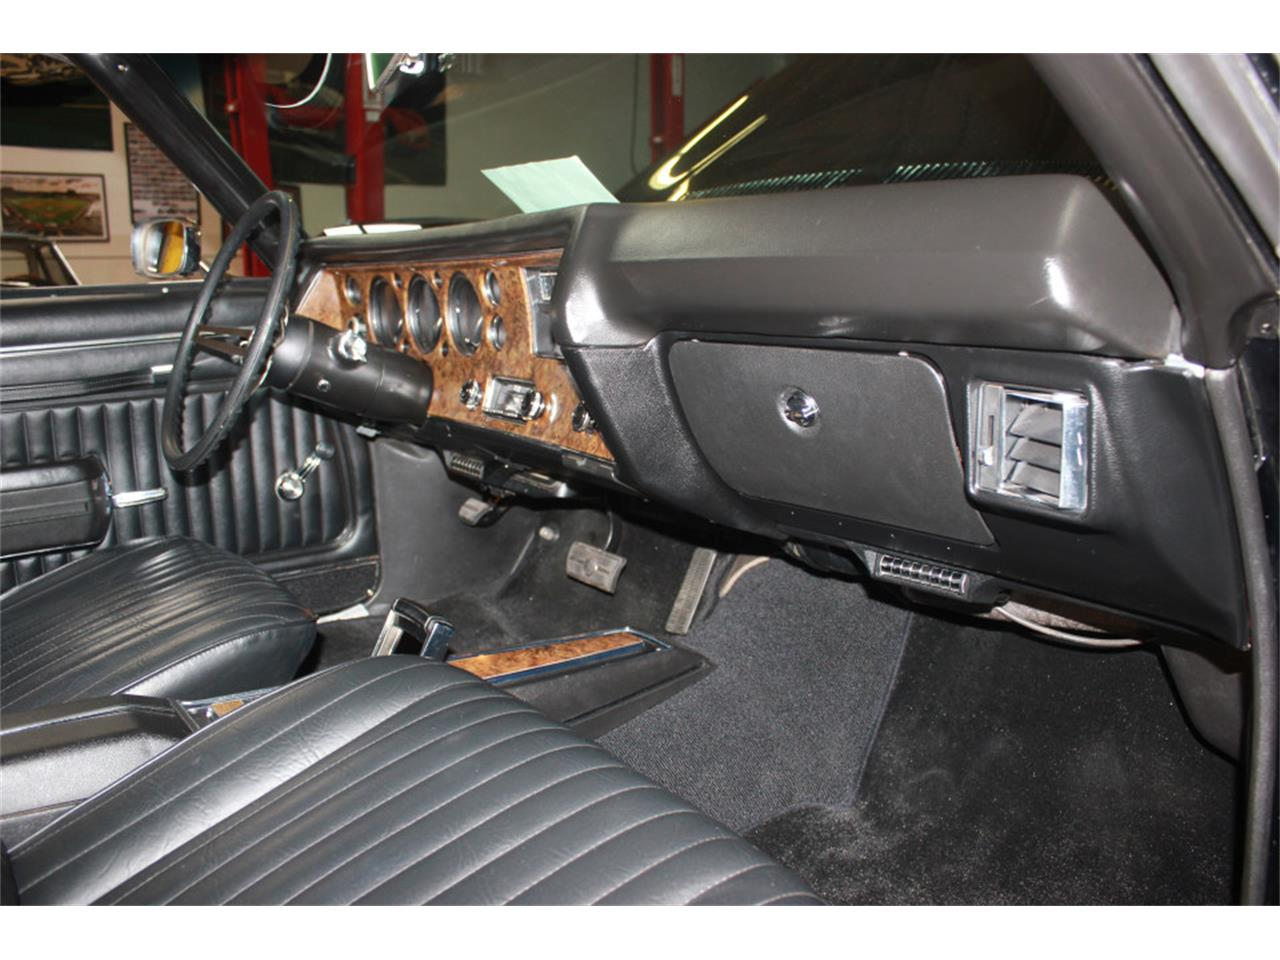 Large Picture of Classic '70 Monte Carlo located in CA - California - $39,500.00 Offered by Precious Metals - PWFG